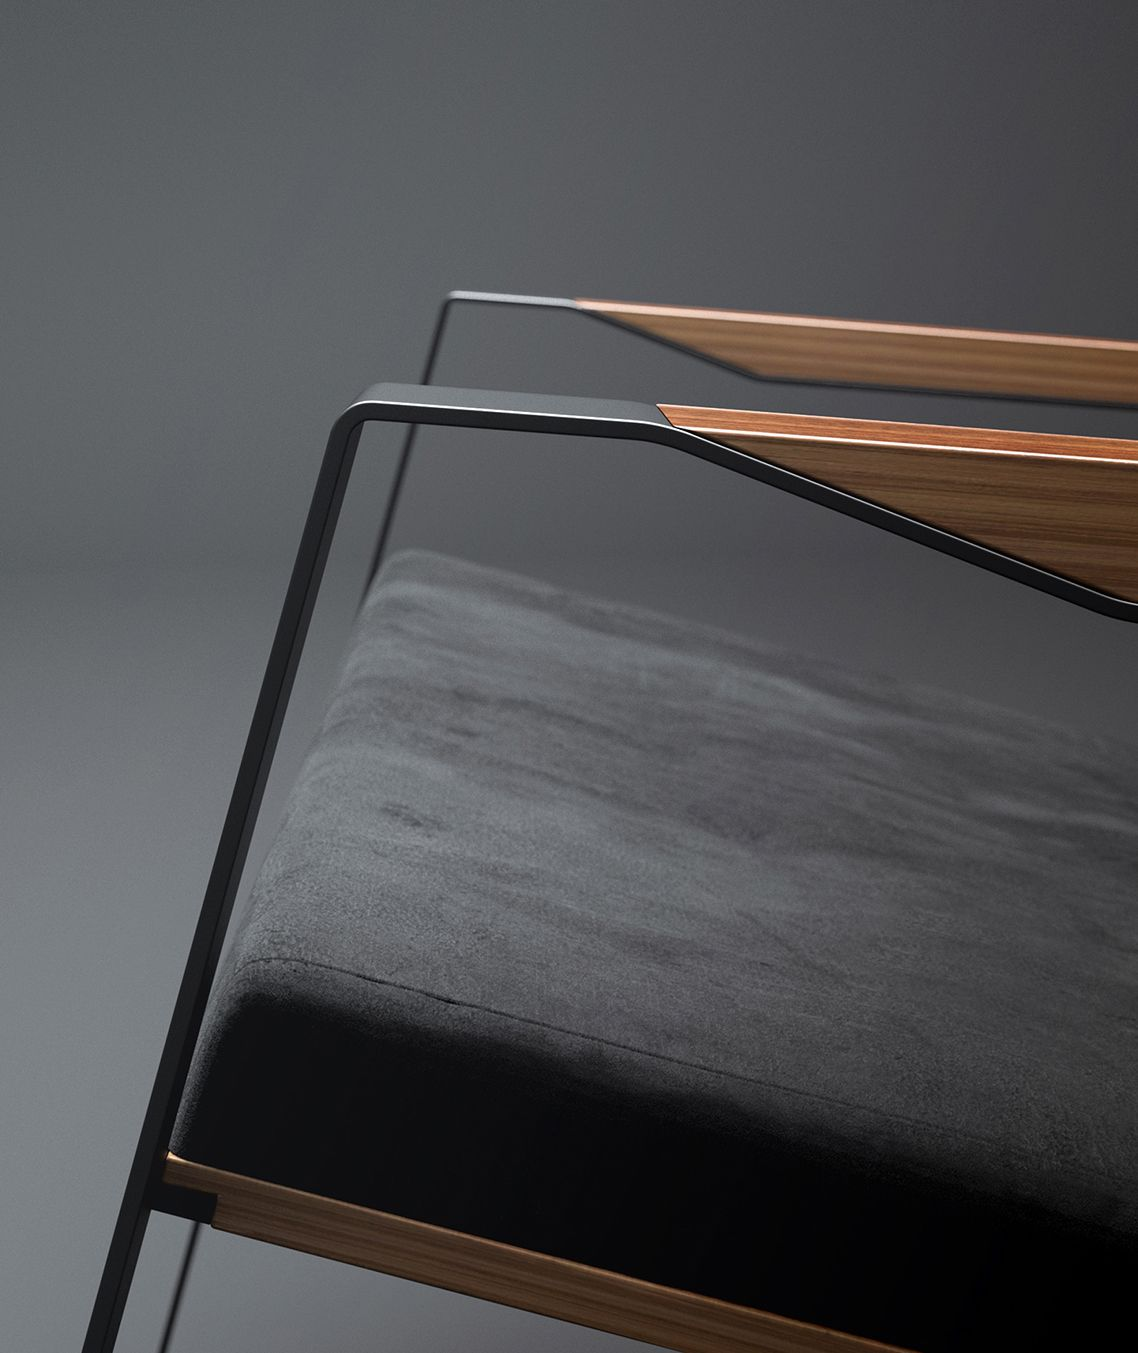 edgy furniture. Modren Furniture Details We Like  Chair Lether Arm Rest Edgy Furniture At  LeManoosh And F